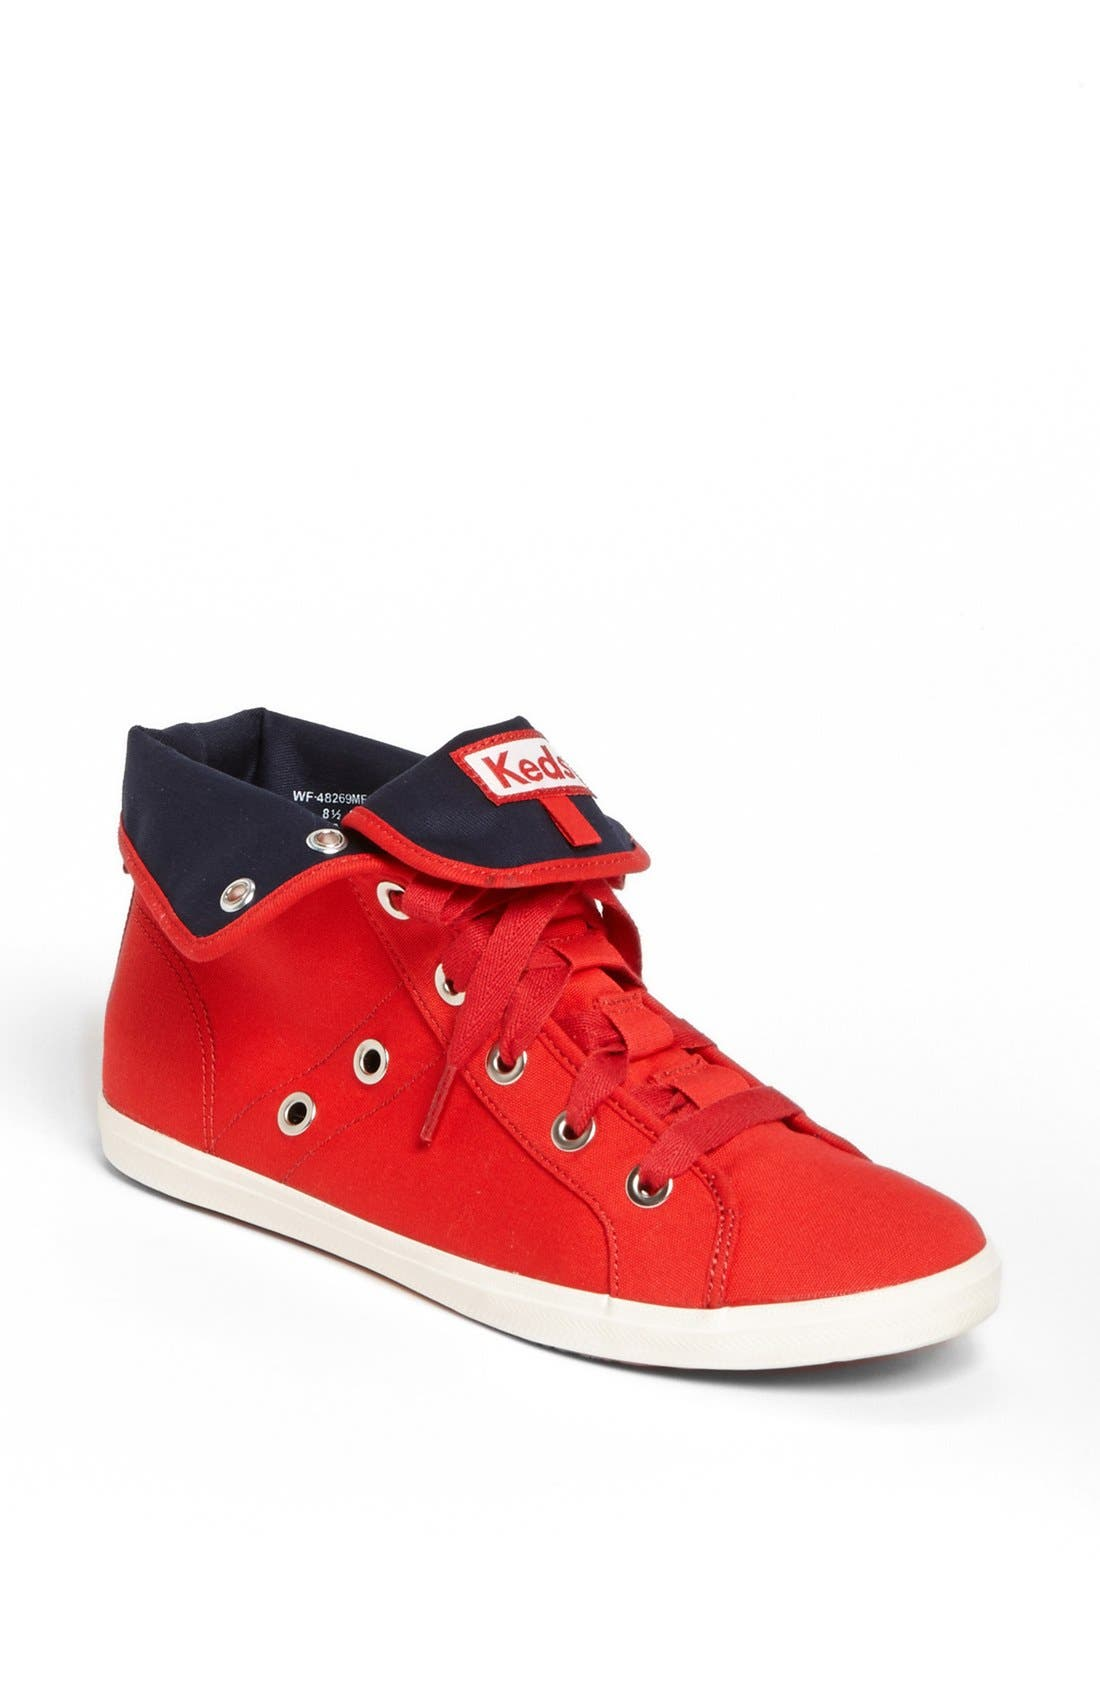 Alternate Image 1 Selected - Keds® 'Rookie - Loop-De-Loop' High Top Sneaker (Women)